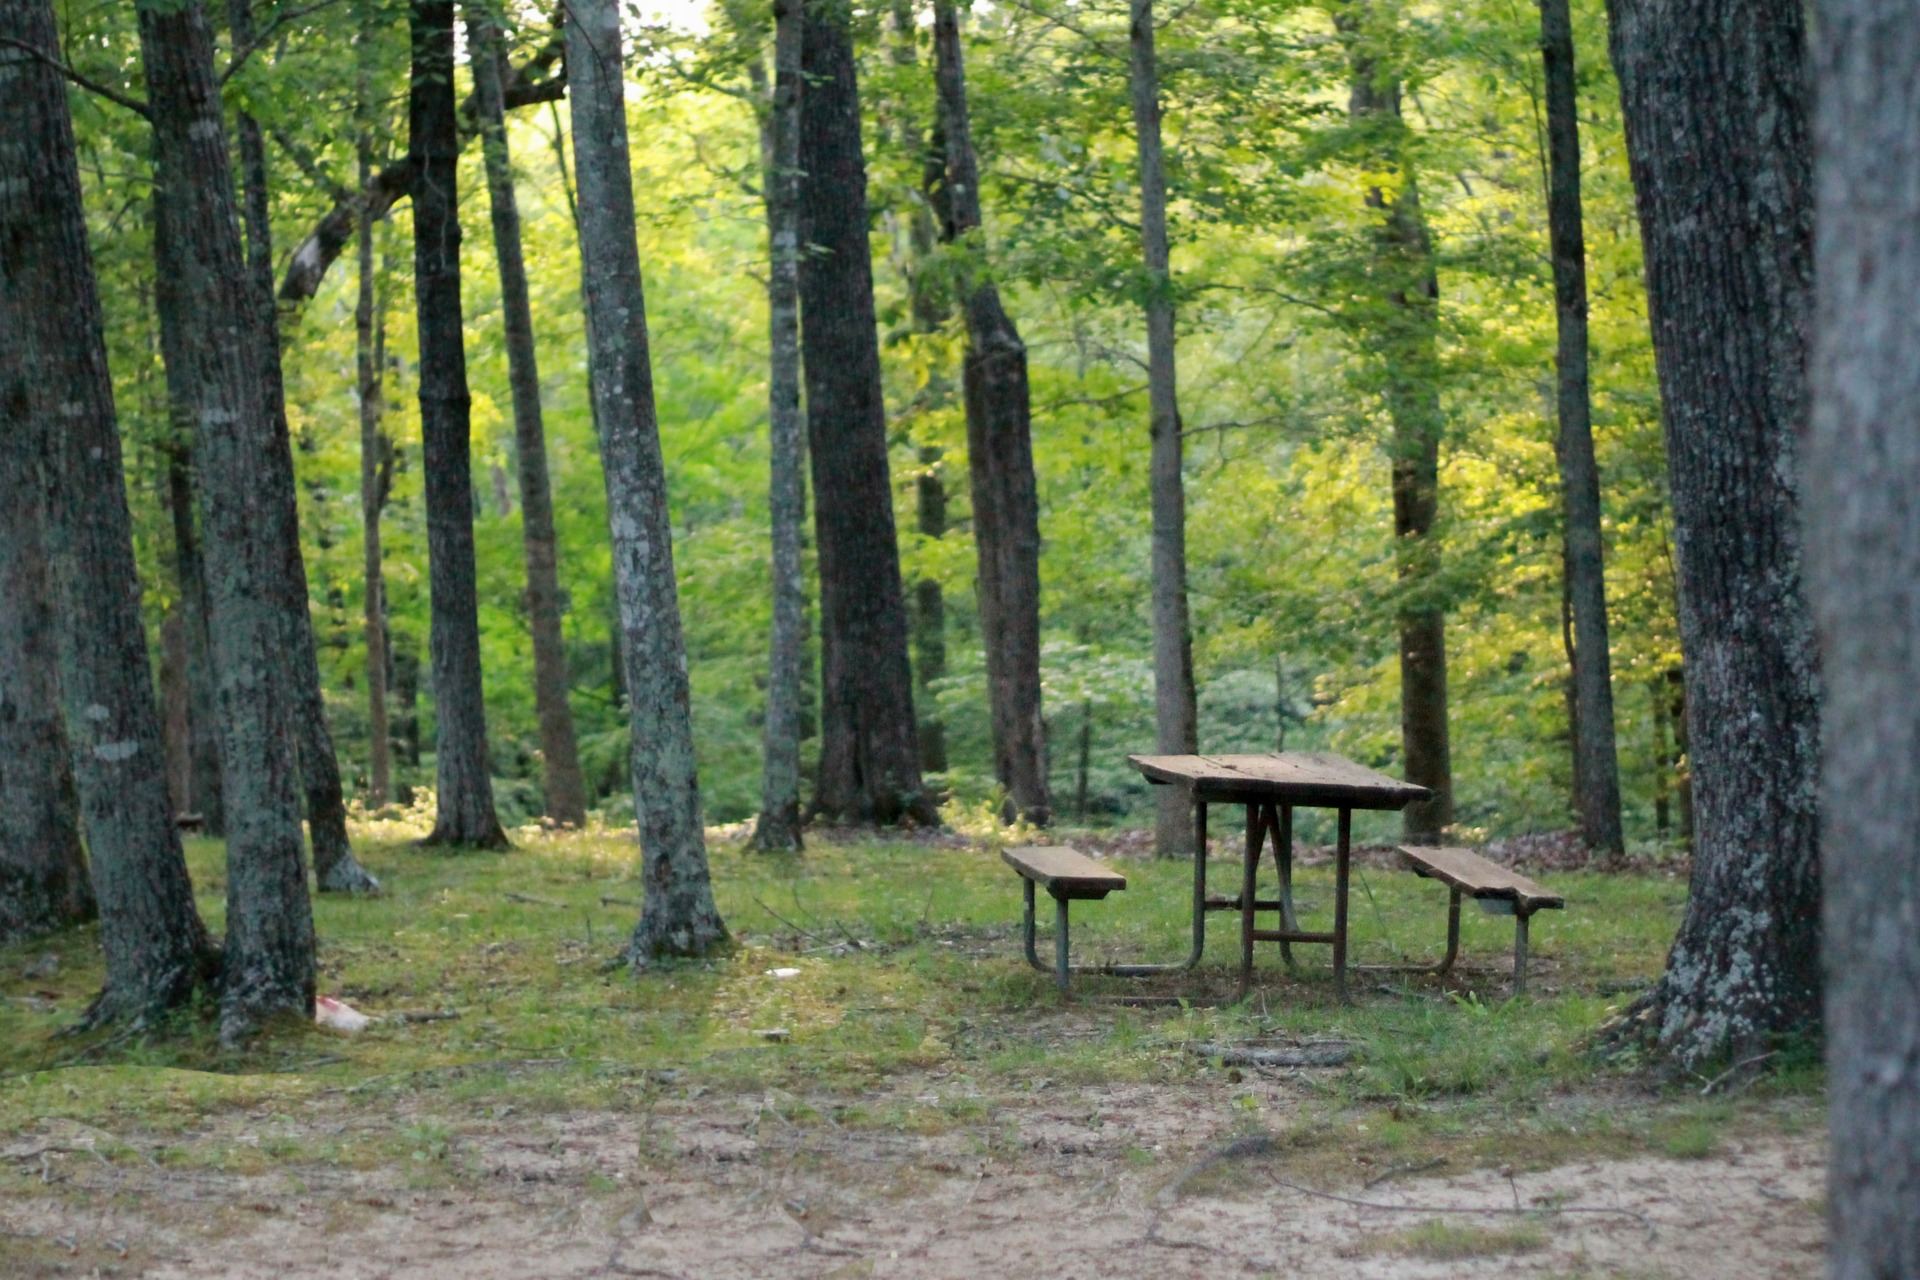 picnic-table-837221_1920